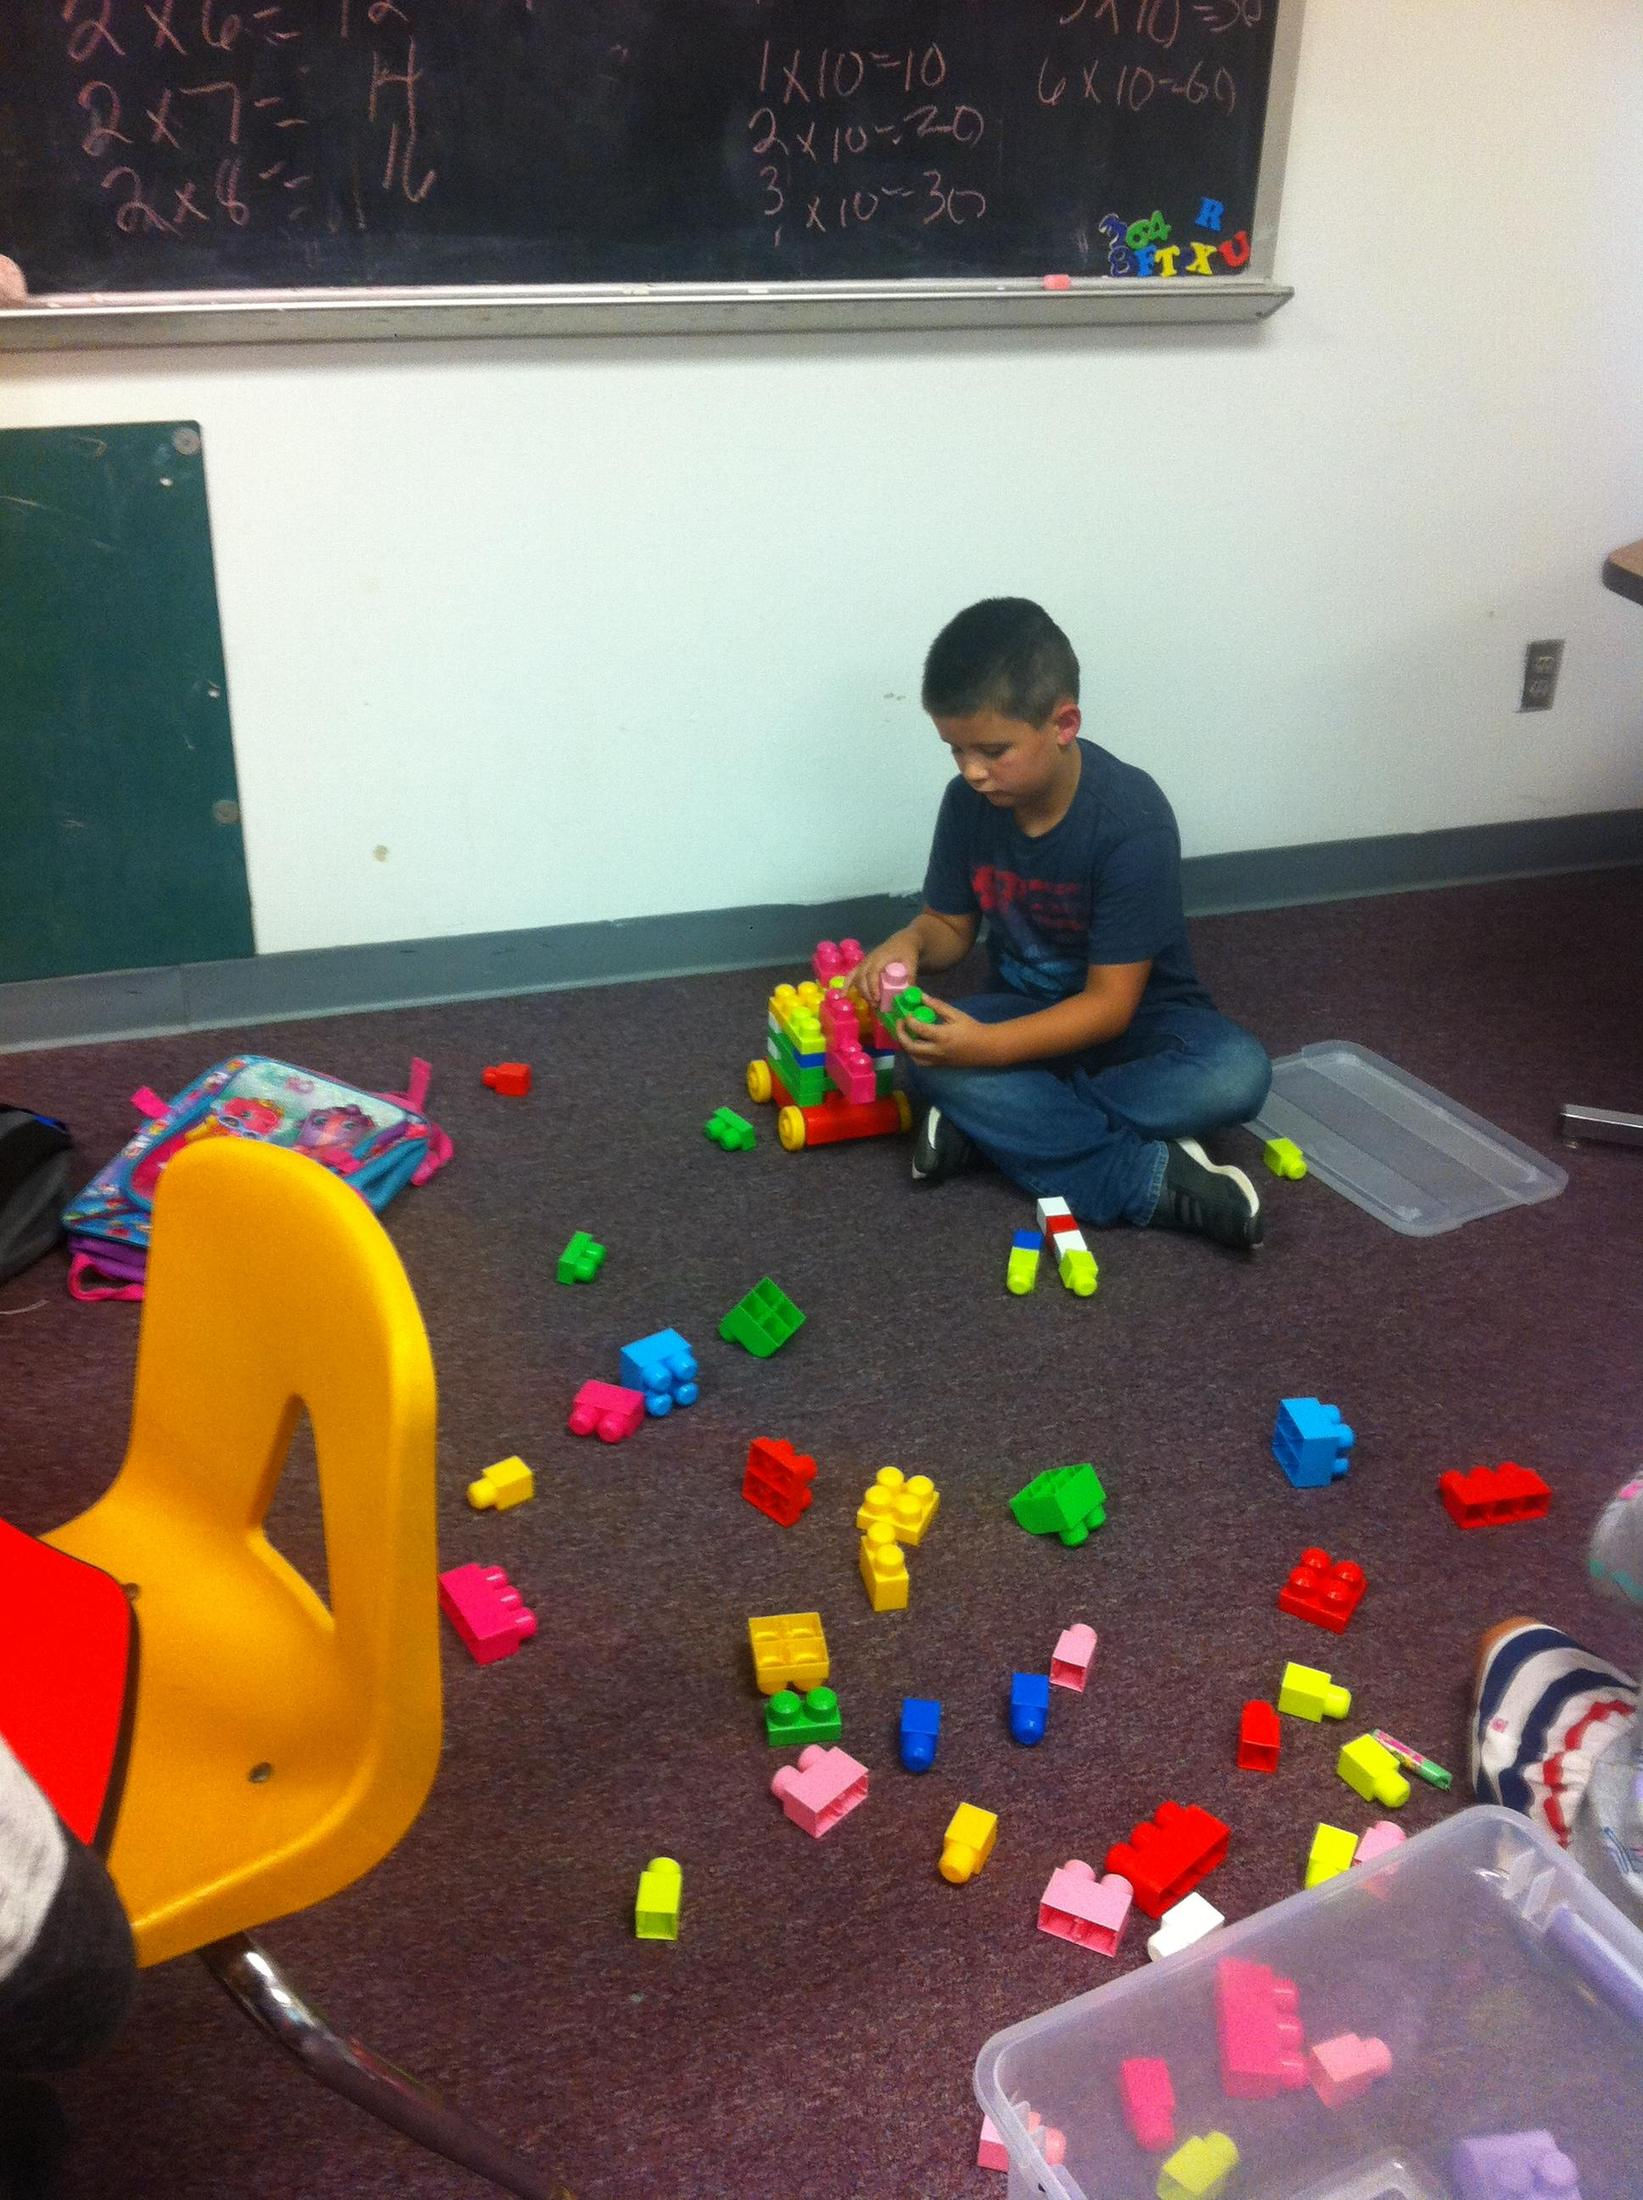 Student building with blocks.